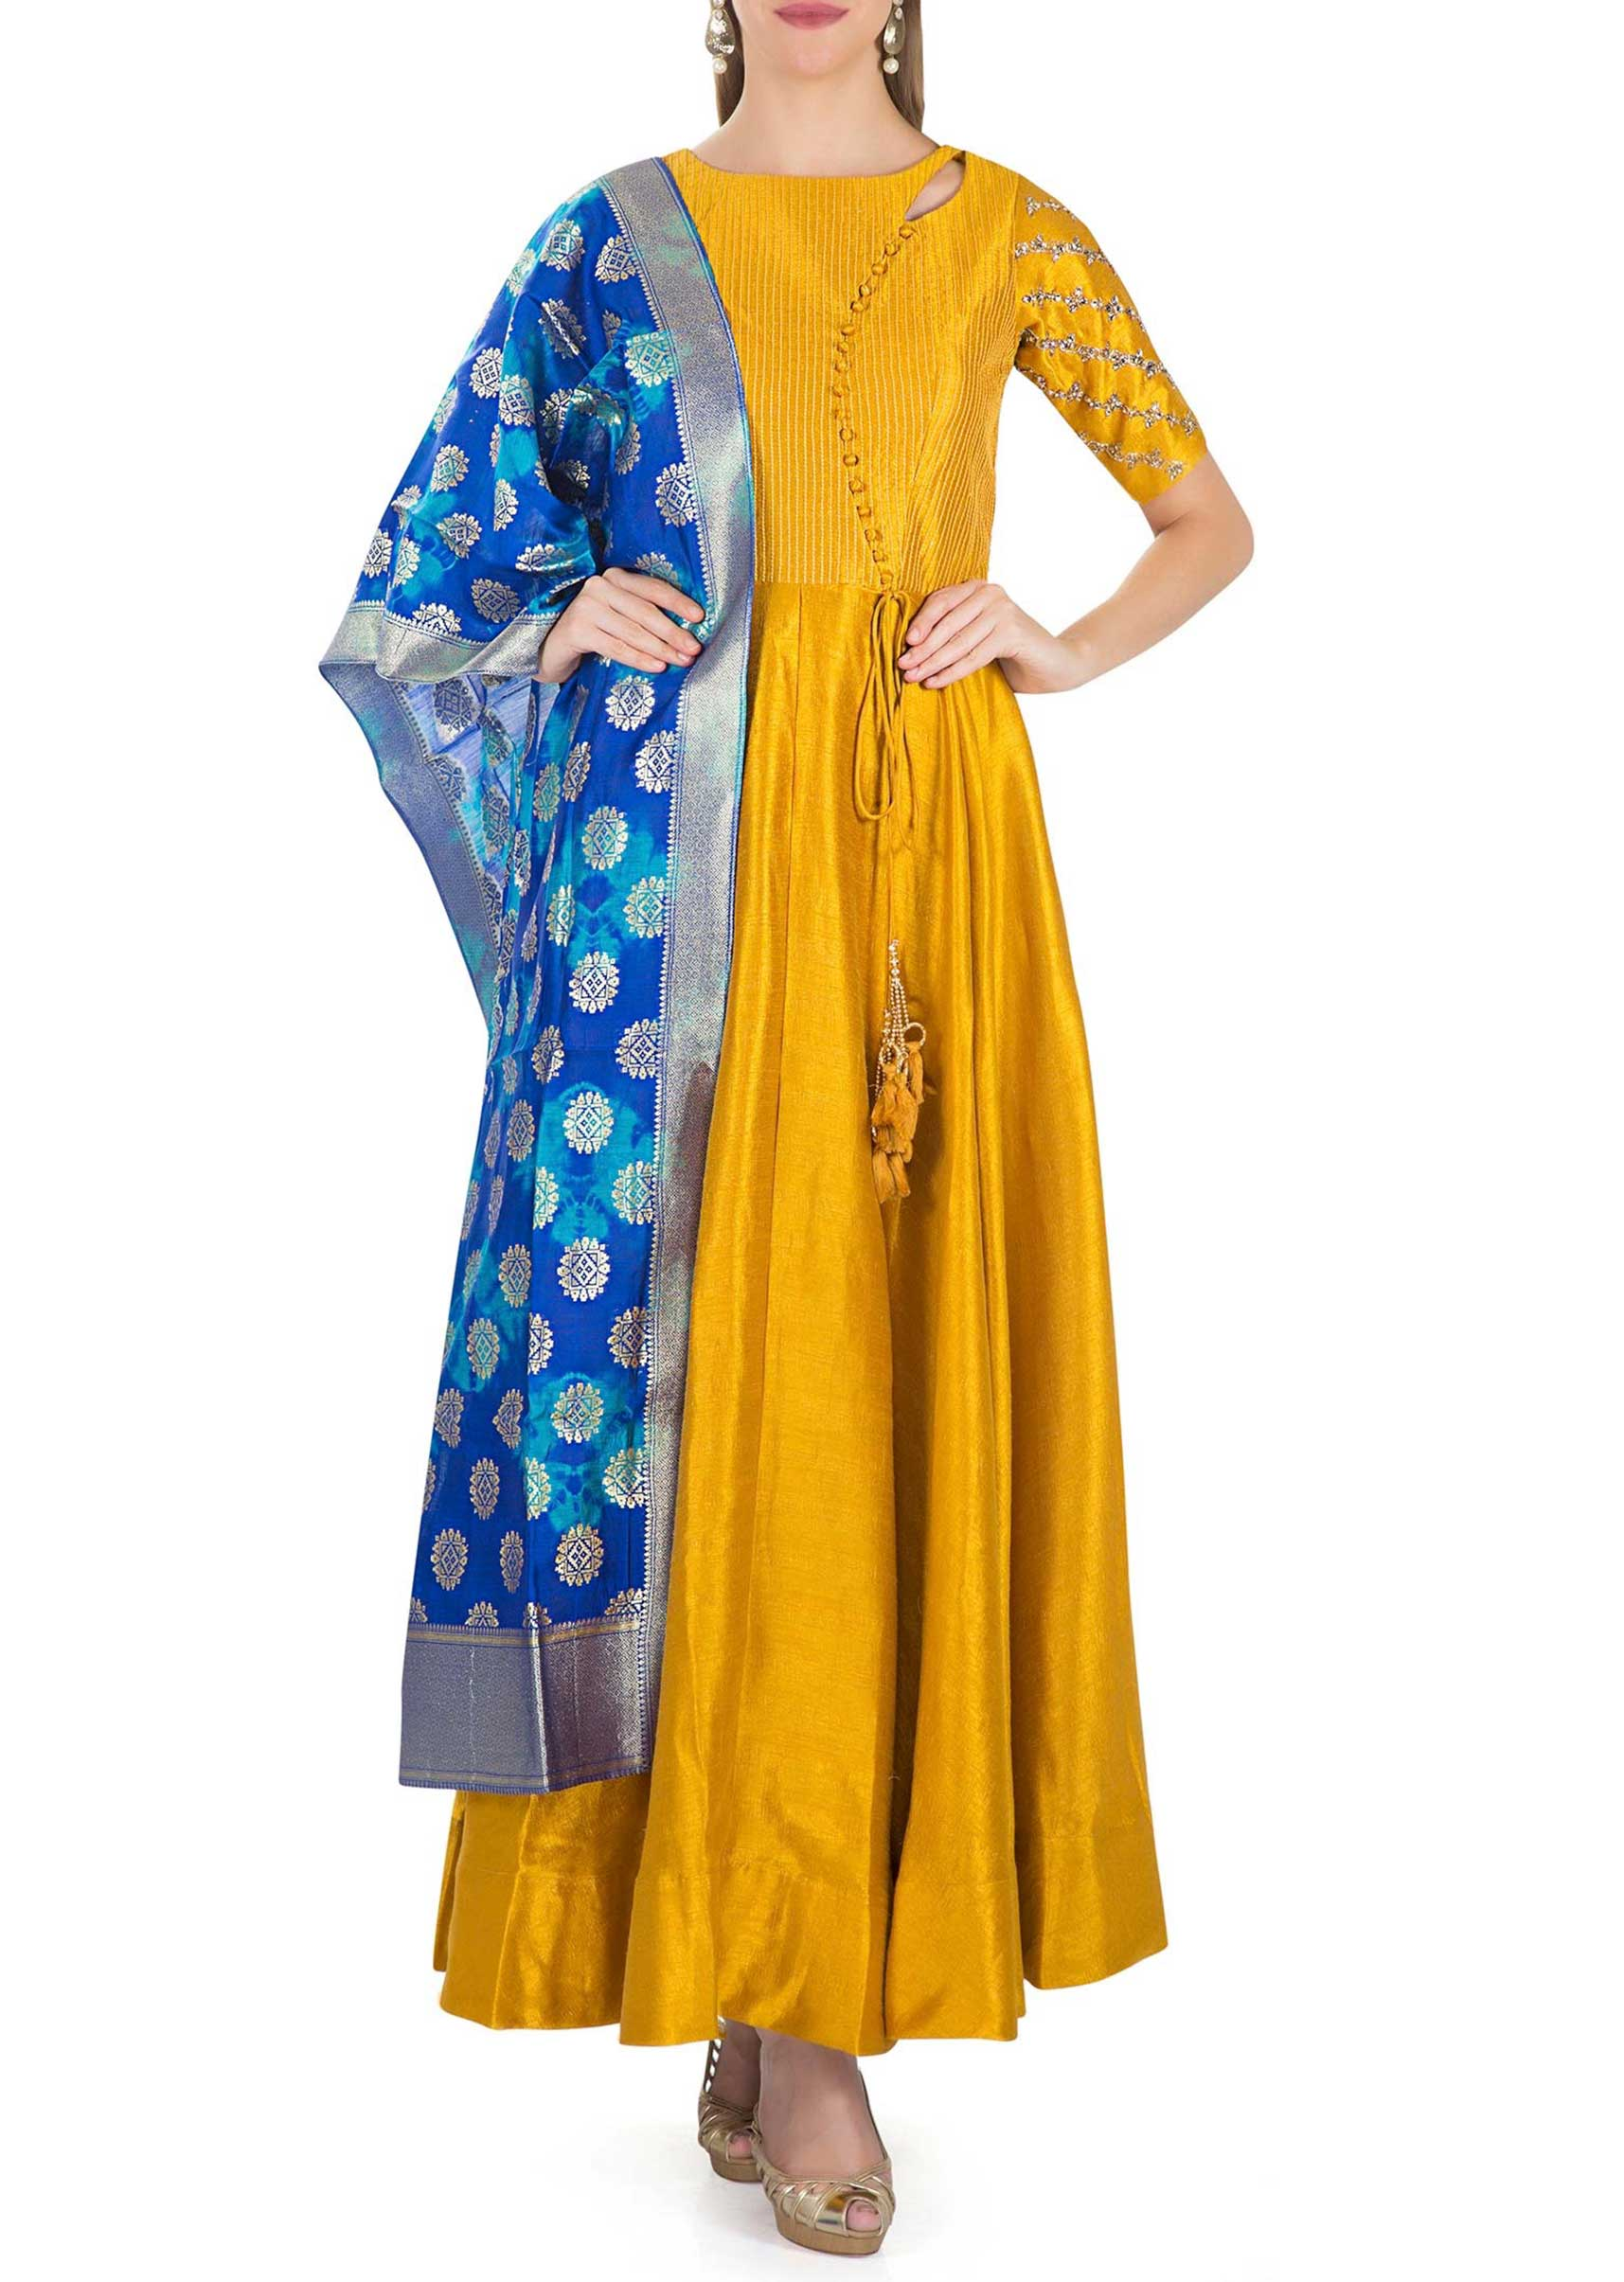 848b32dca6 Mustard Cotton Silk Top with Kundan Embroidery and Royal Blue Brocade Silk  Dupatta only on KalkiMore Detail